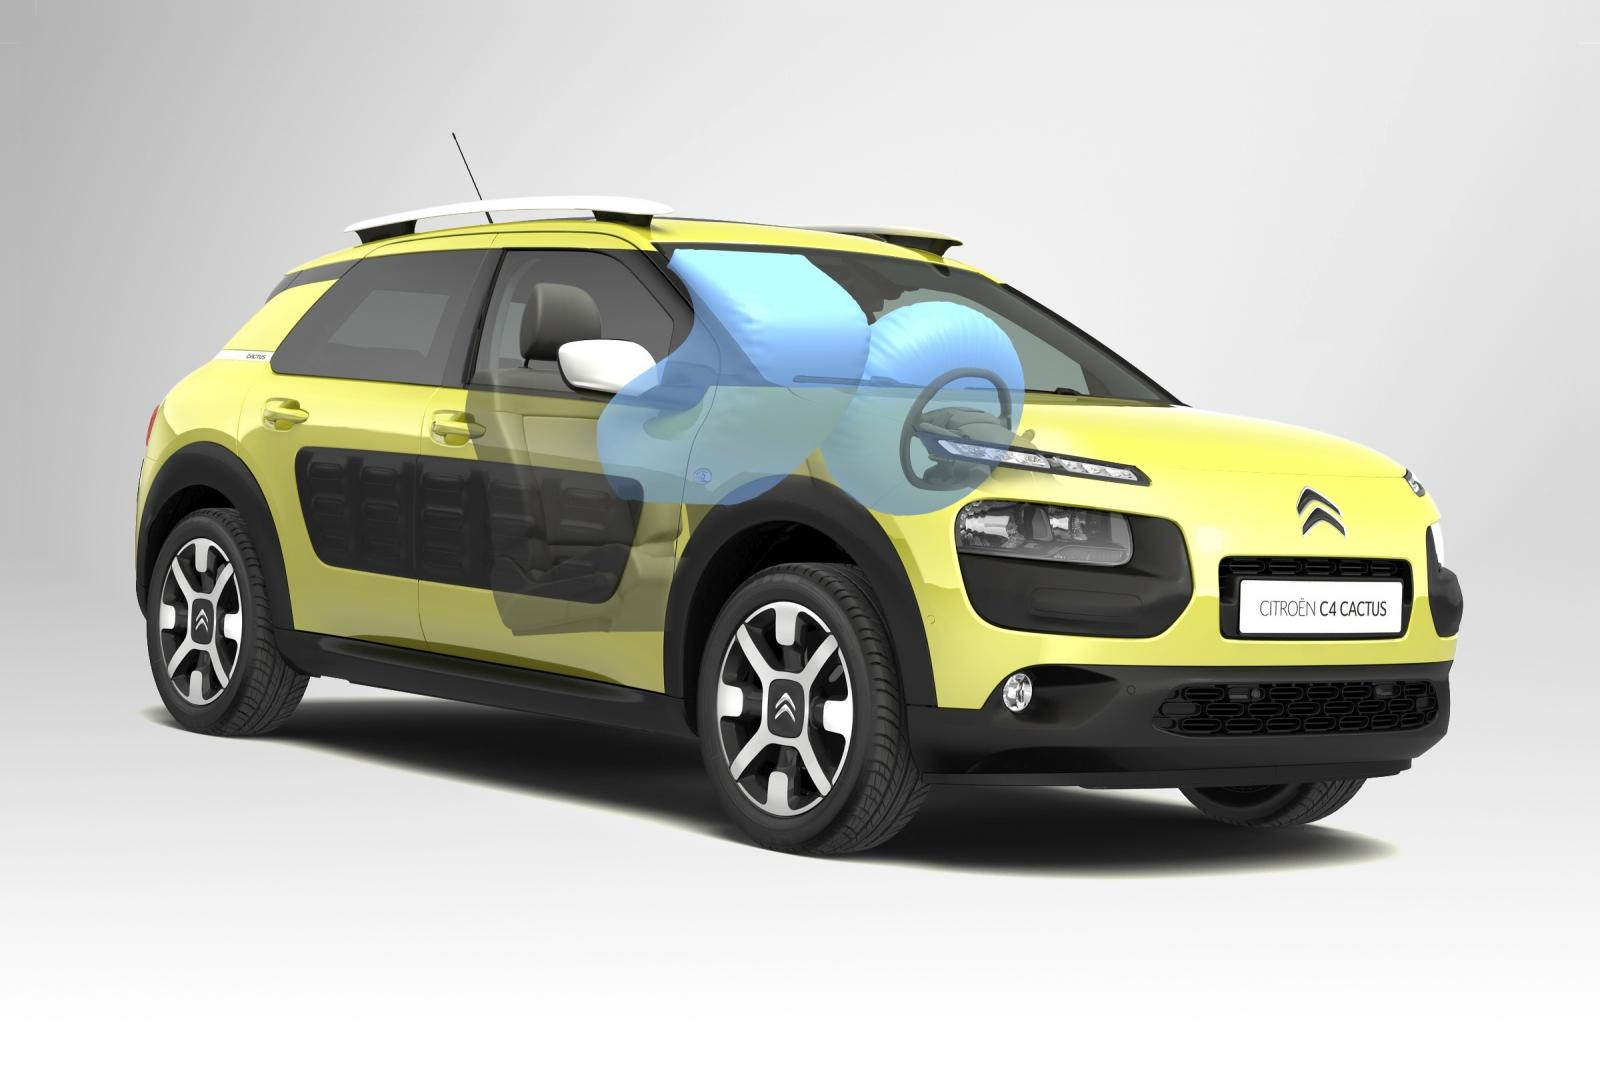 C4 Cactus Feel edition 2014 Airbags